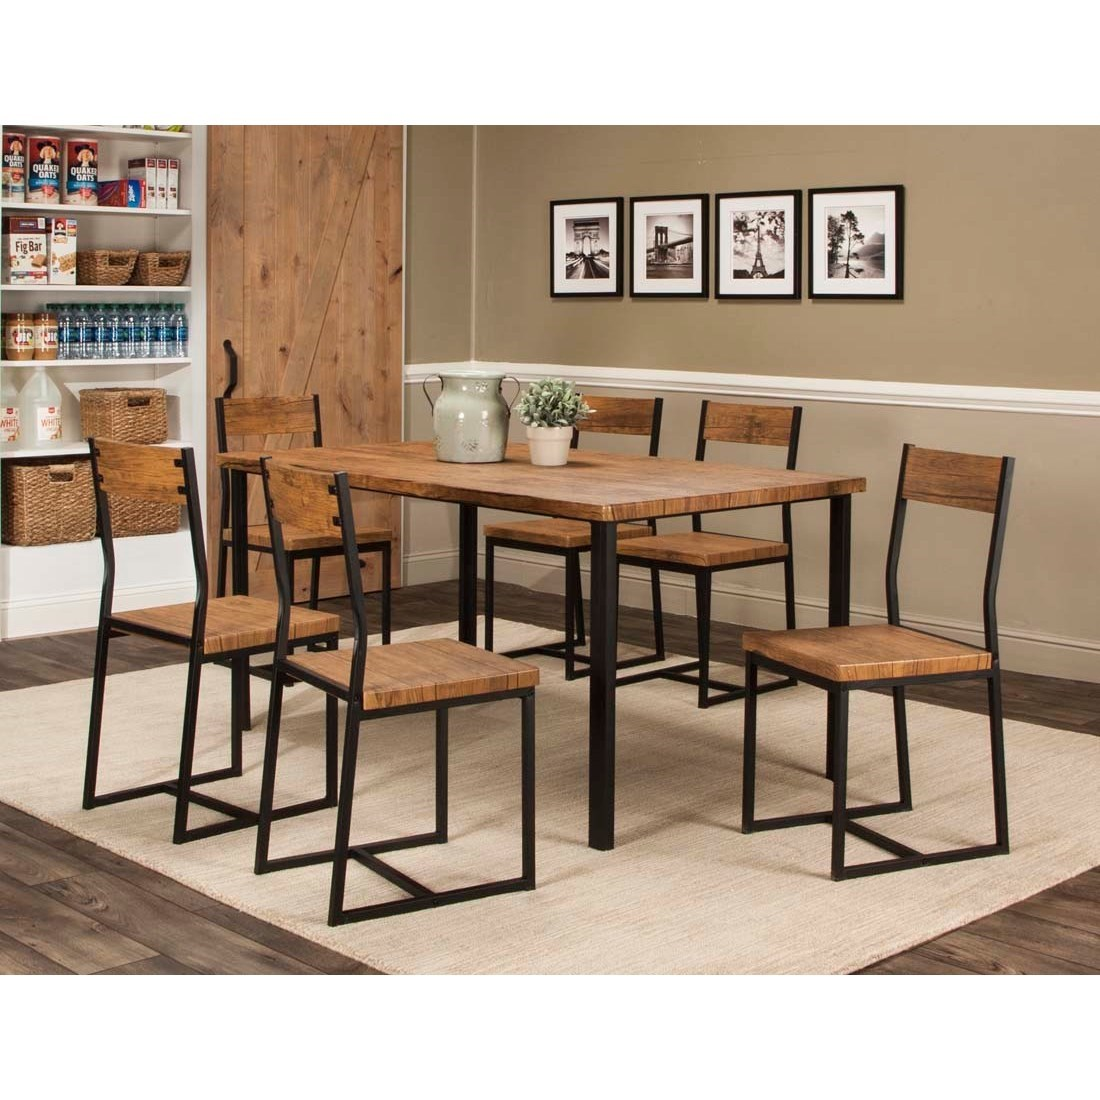 Adler 7-Piece Table and Chair Set by Cramco, Inc at Lapeer Furniture & Mattress Center